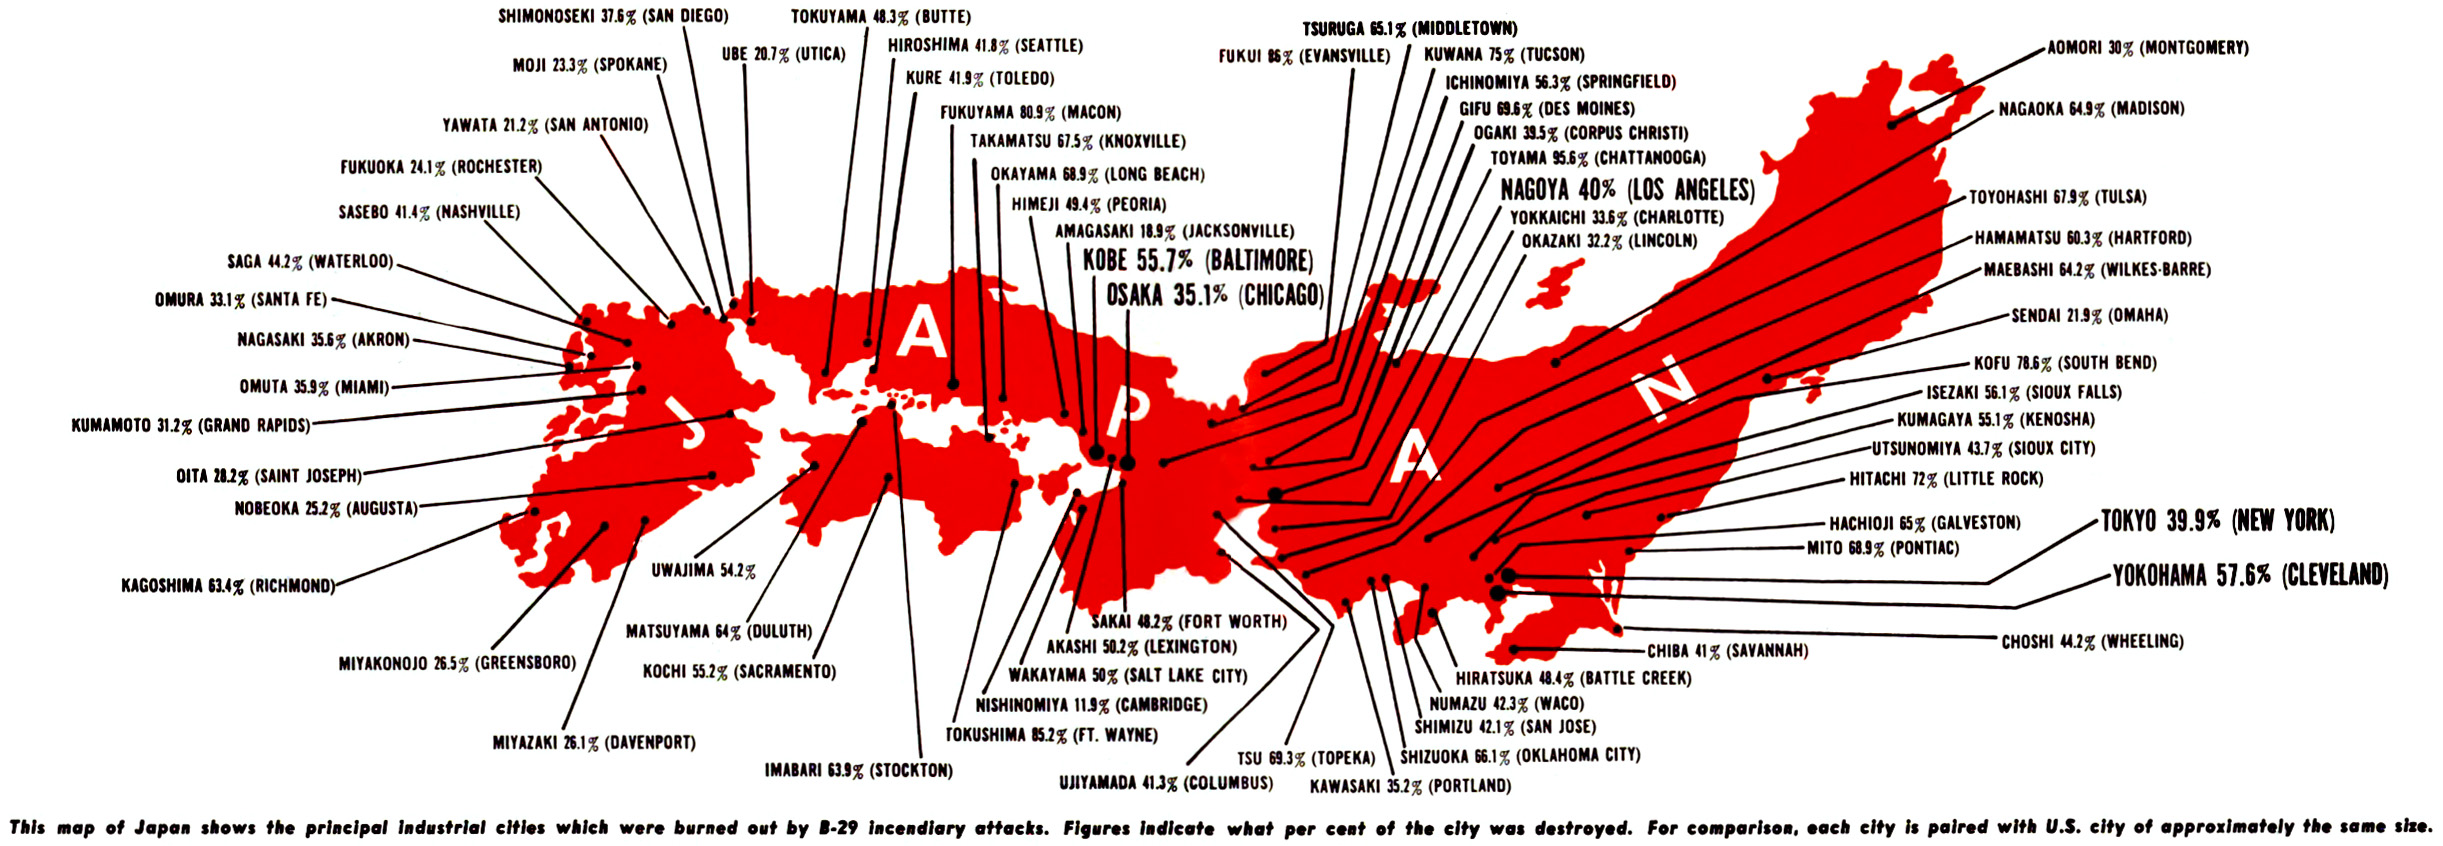 Firebombs USA Restricted Data - Japan map of cities